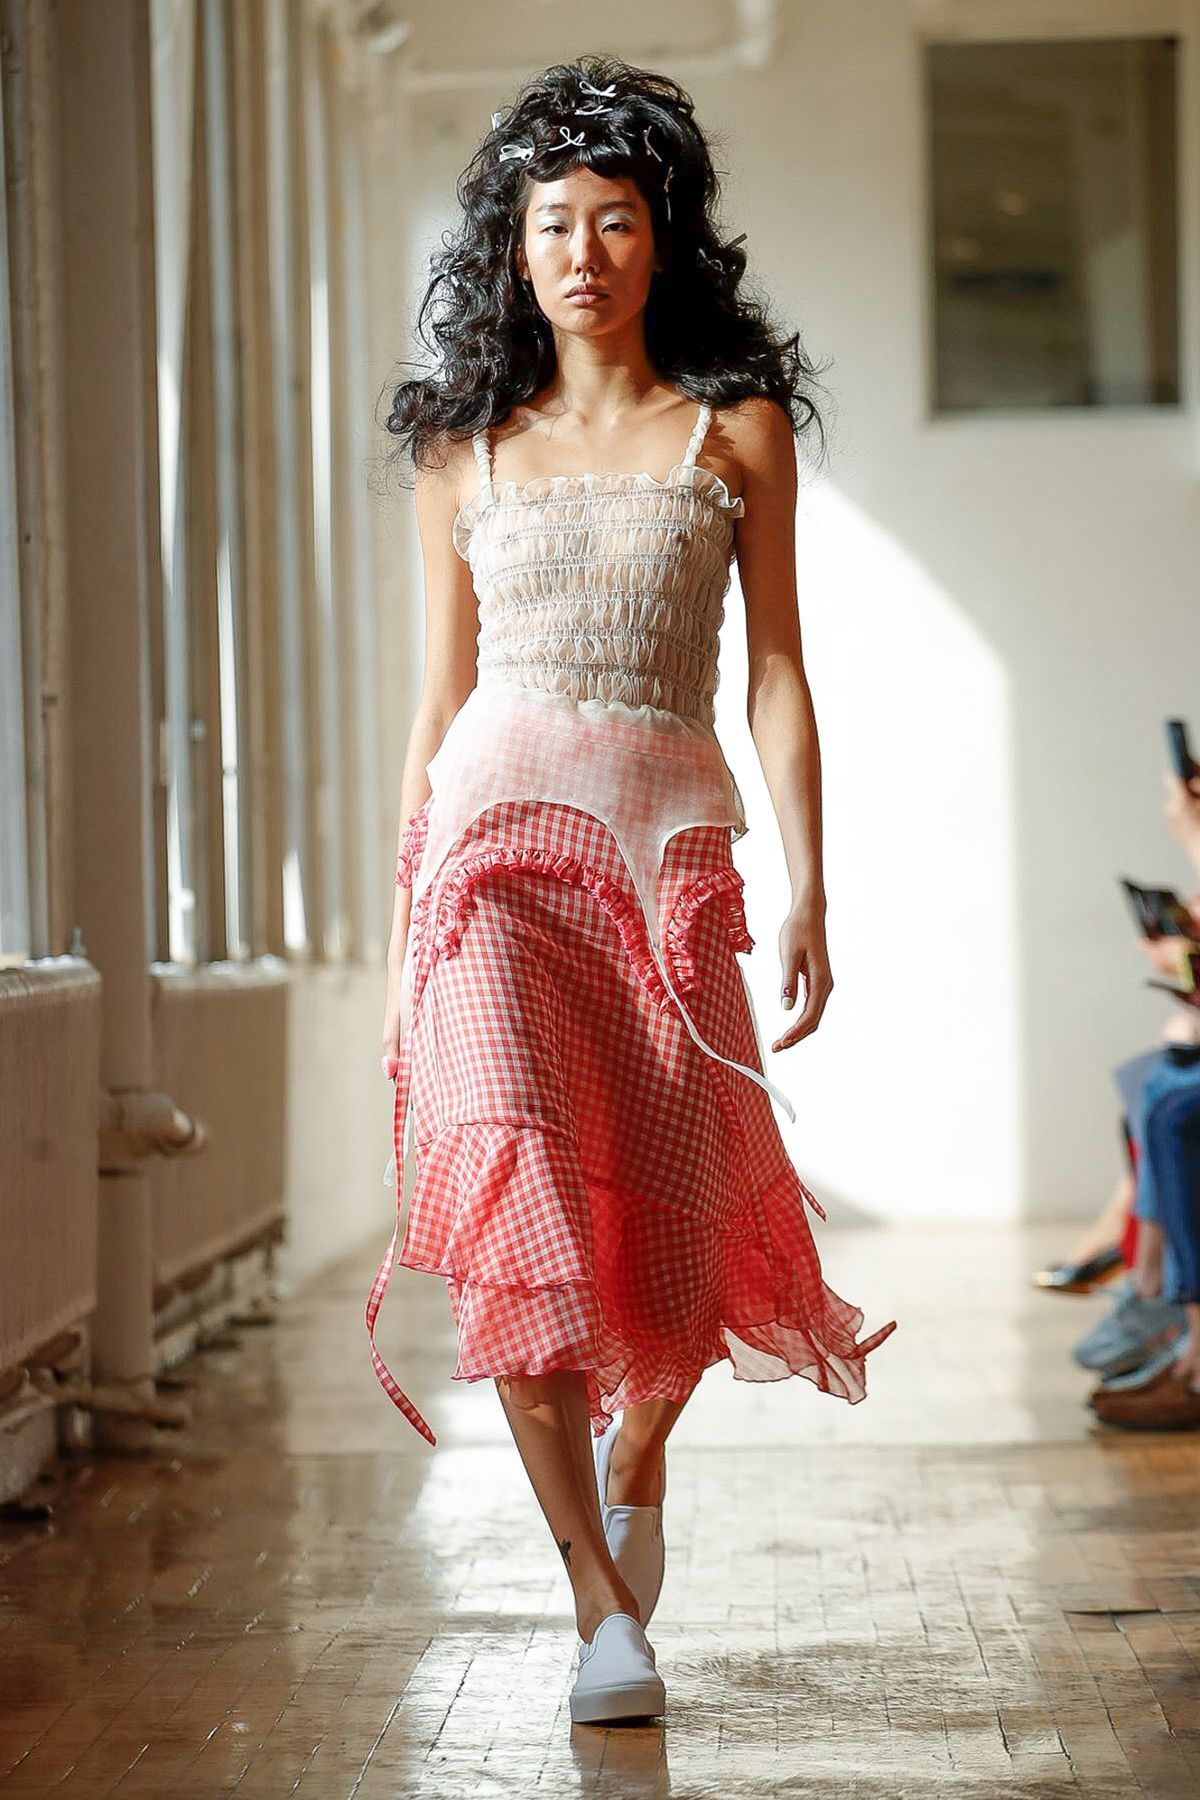 Fashion Month Left Loose Ends Untied